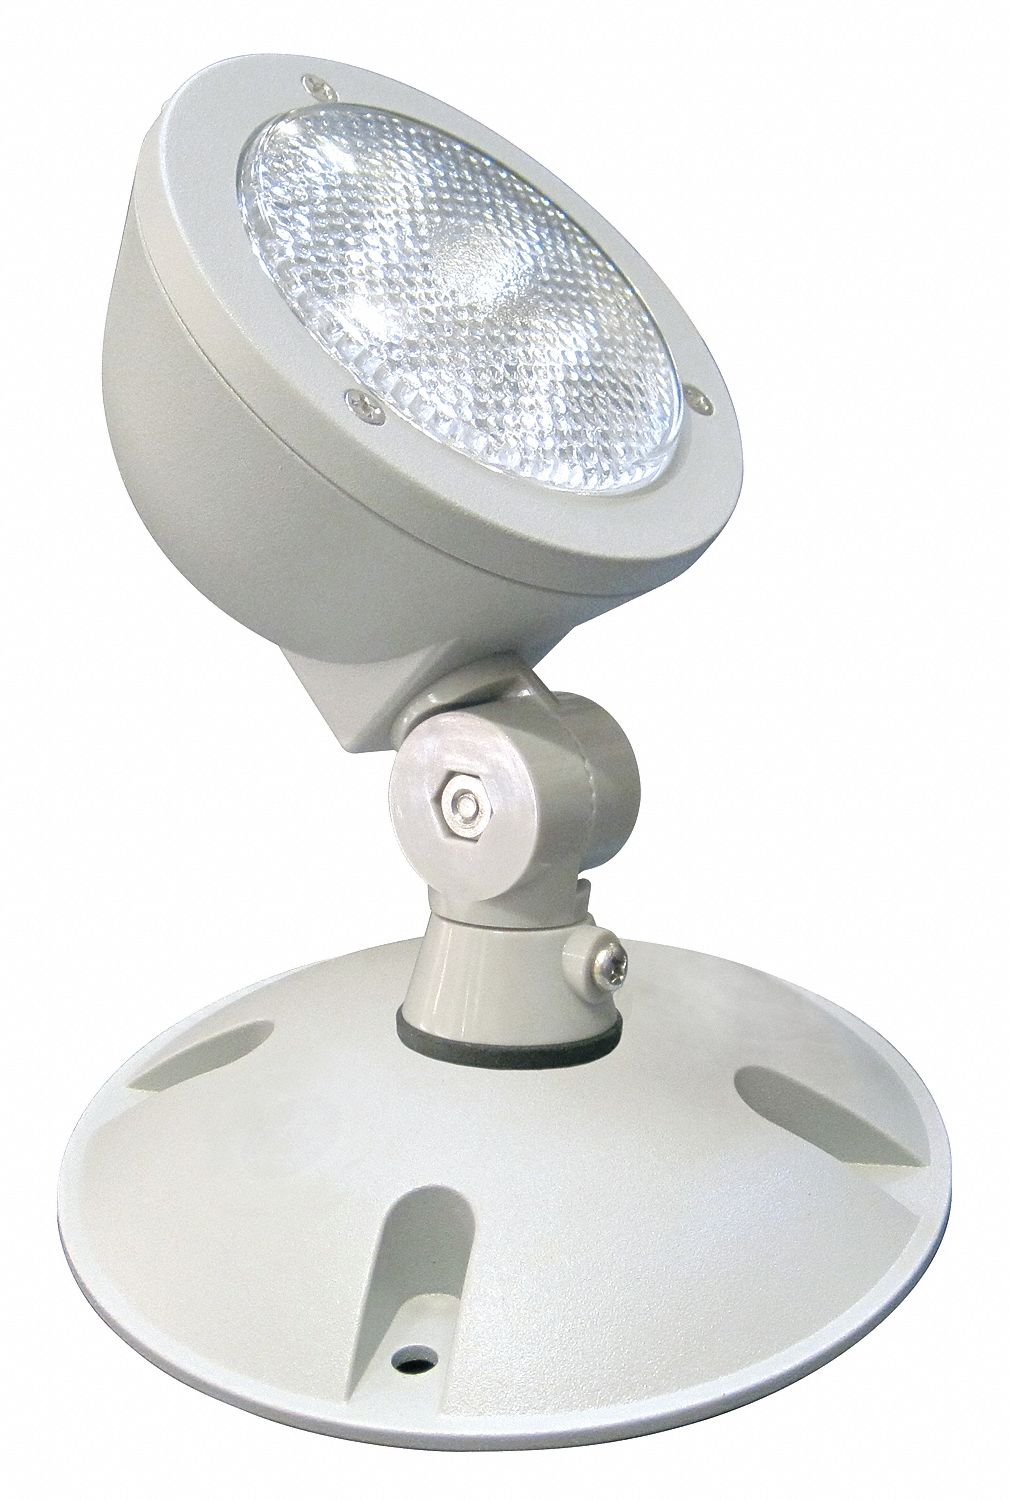 Cors Lighting: LITHONIA LIGHTING 1-Lamp LED Wet Location Remote Head, 9